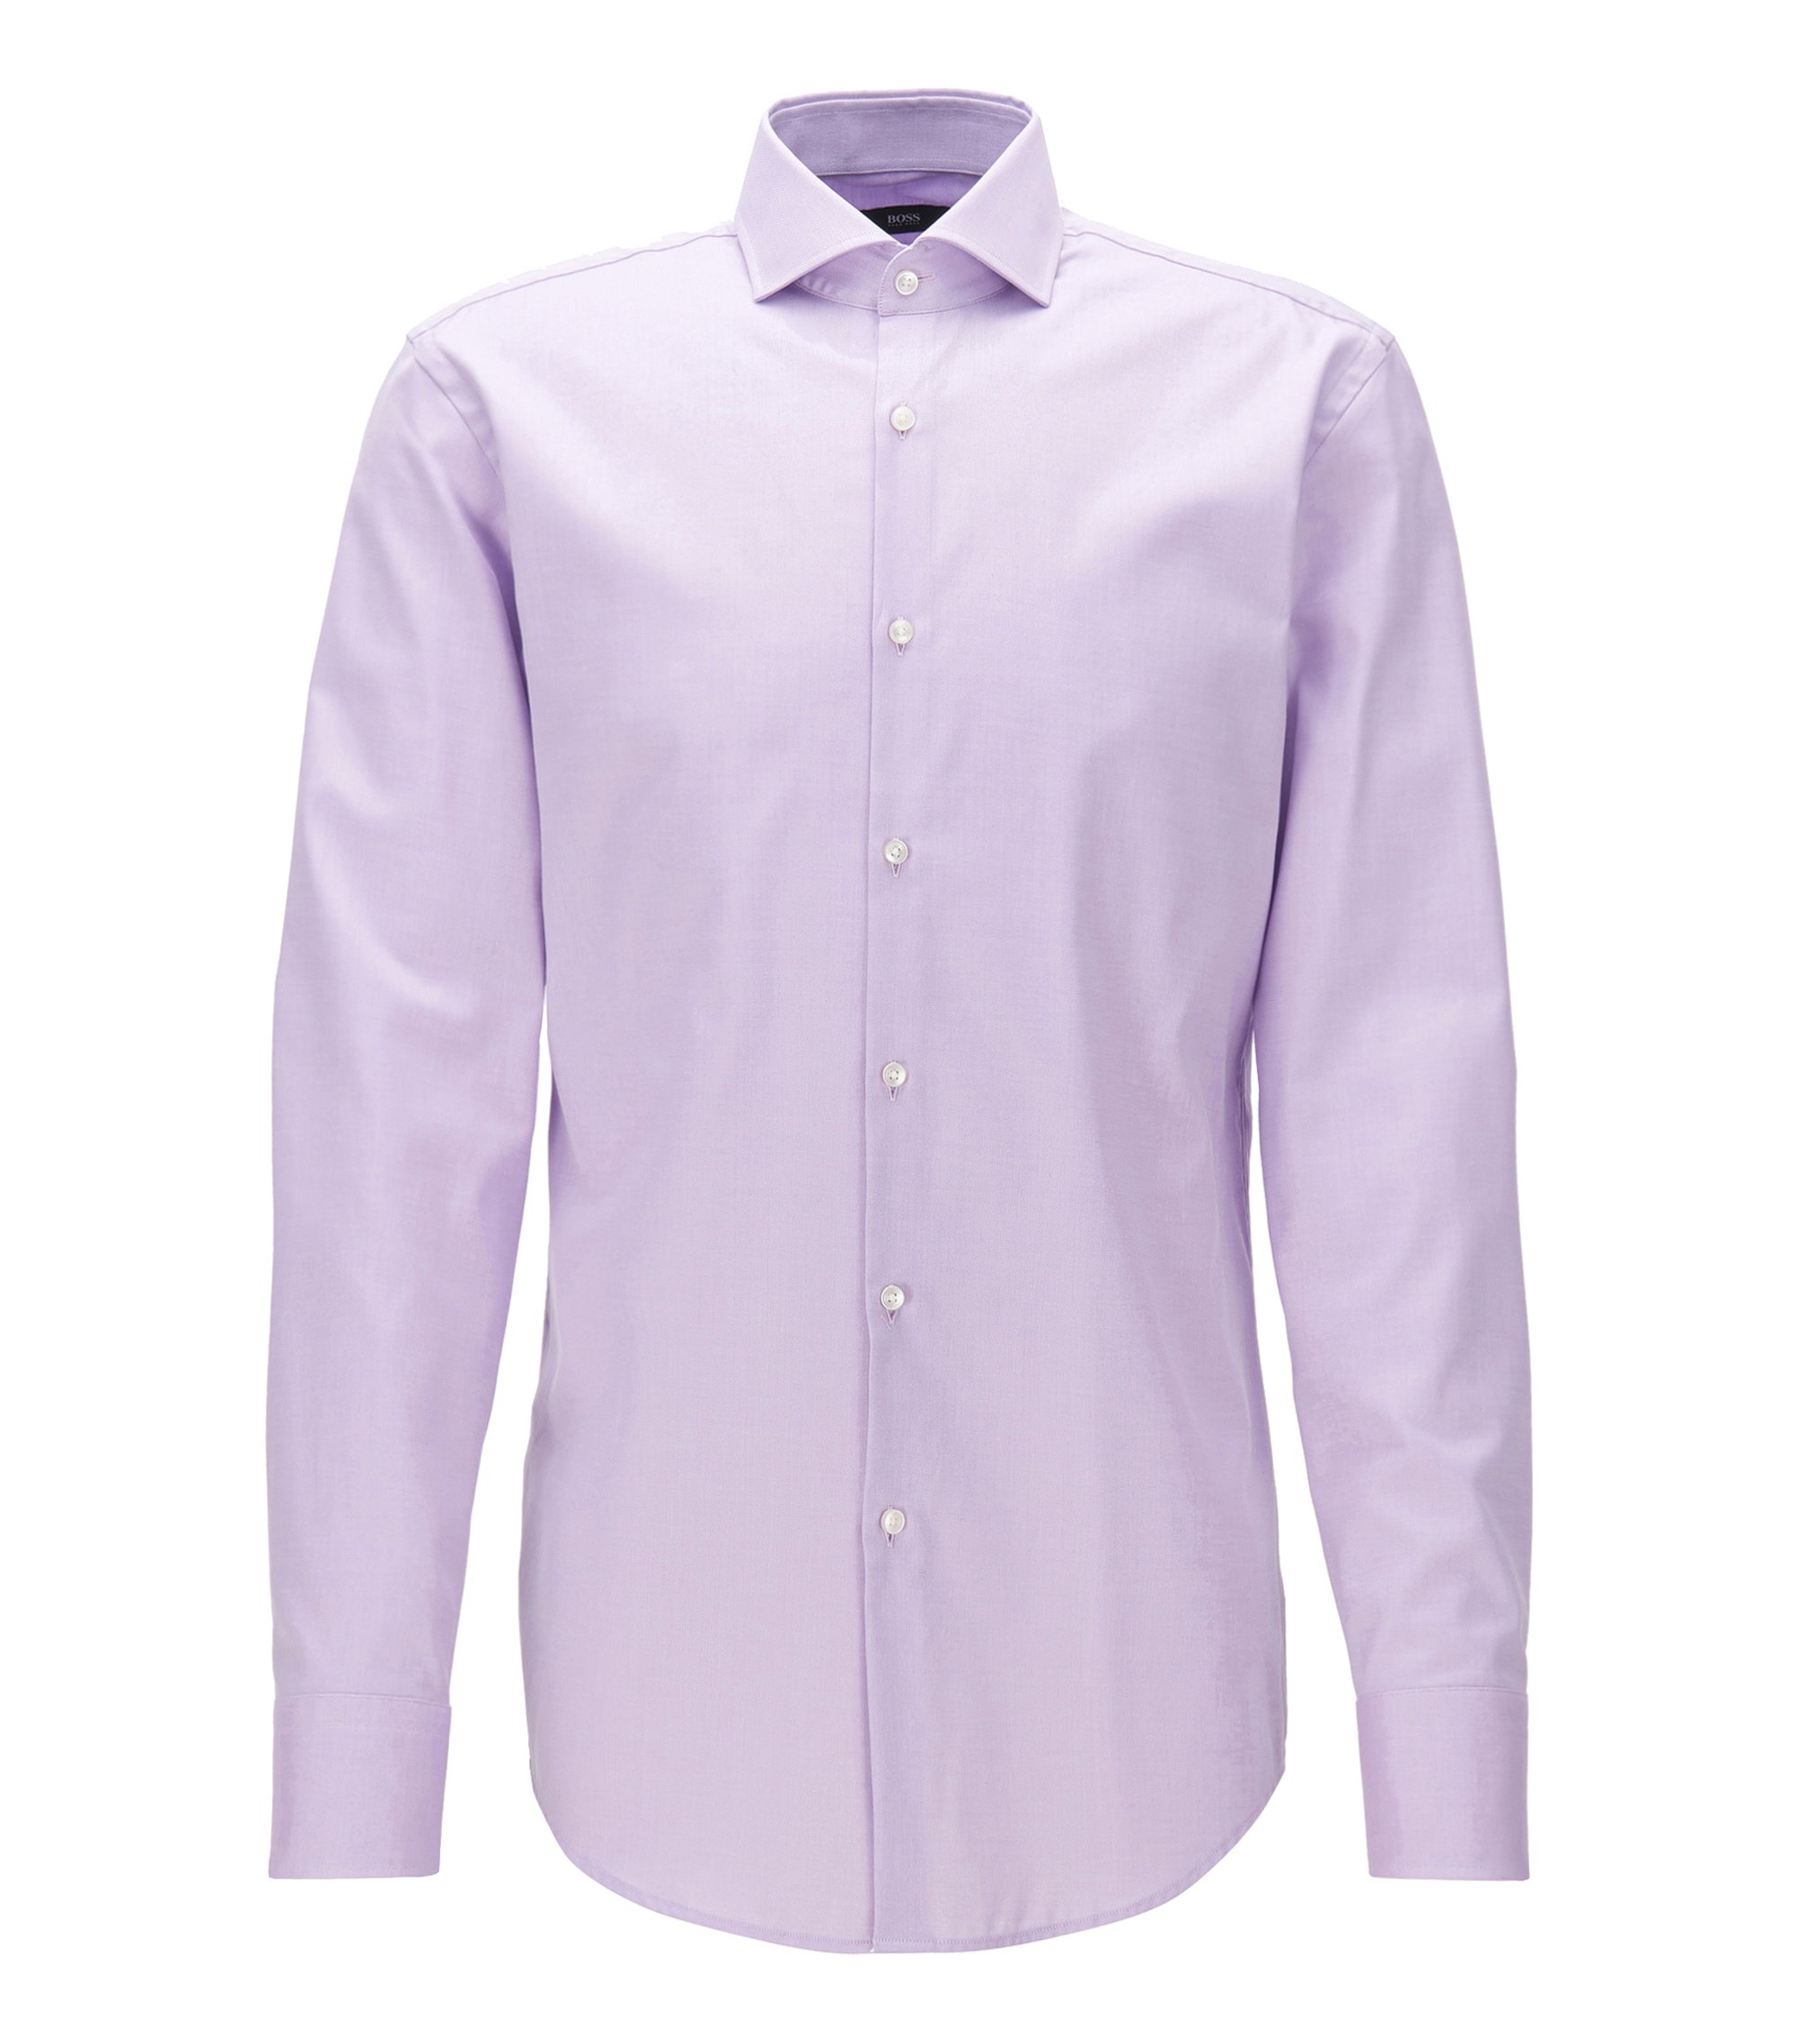 Camicia slim fit in twill di cotone con colletto alla francese, Luce viola